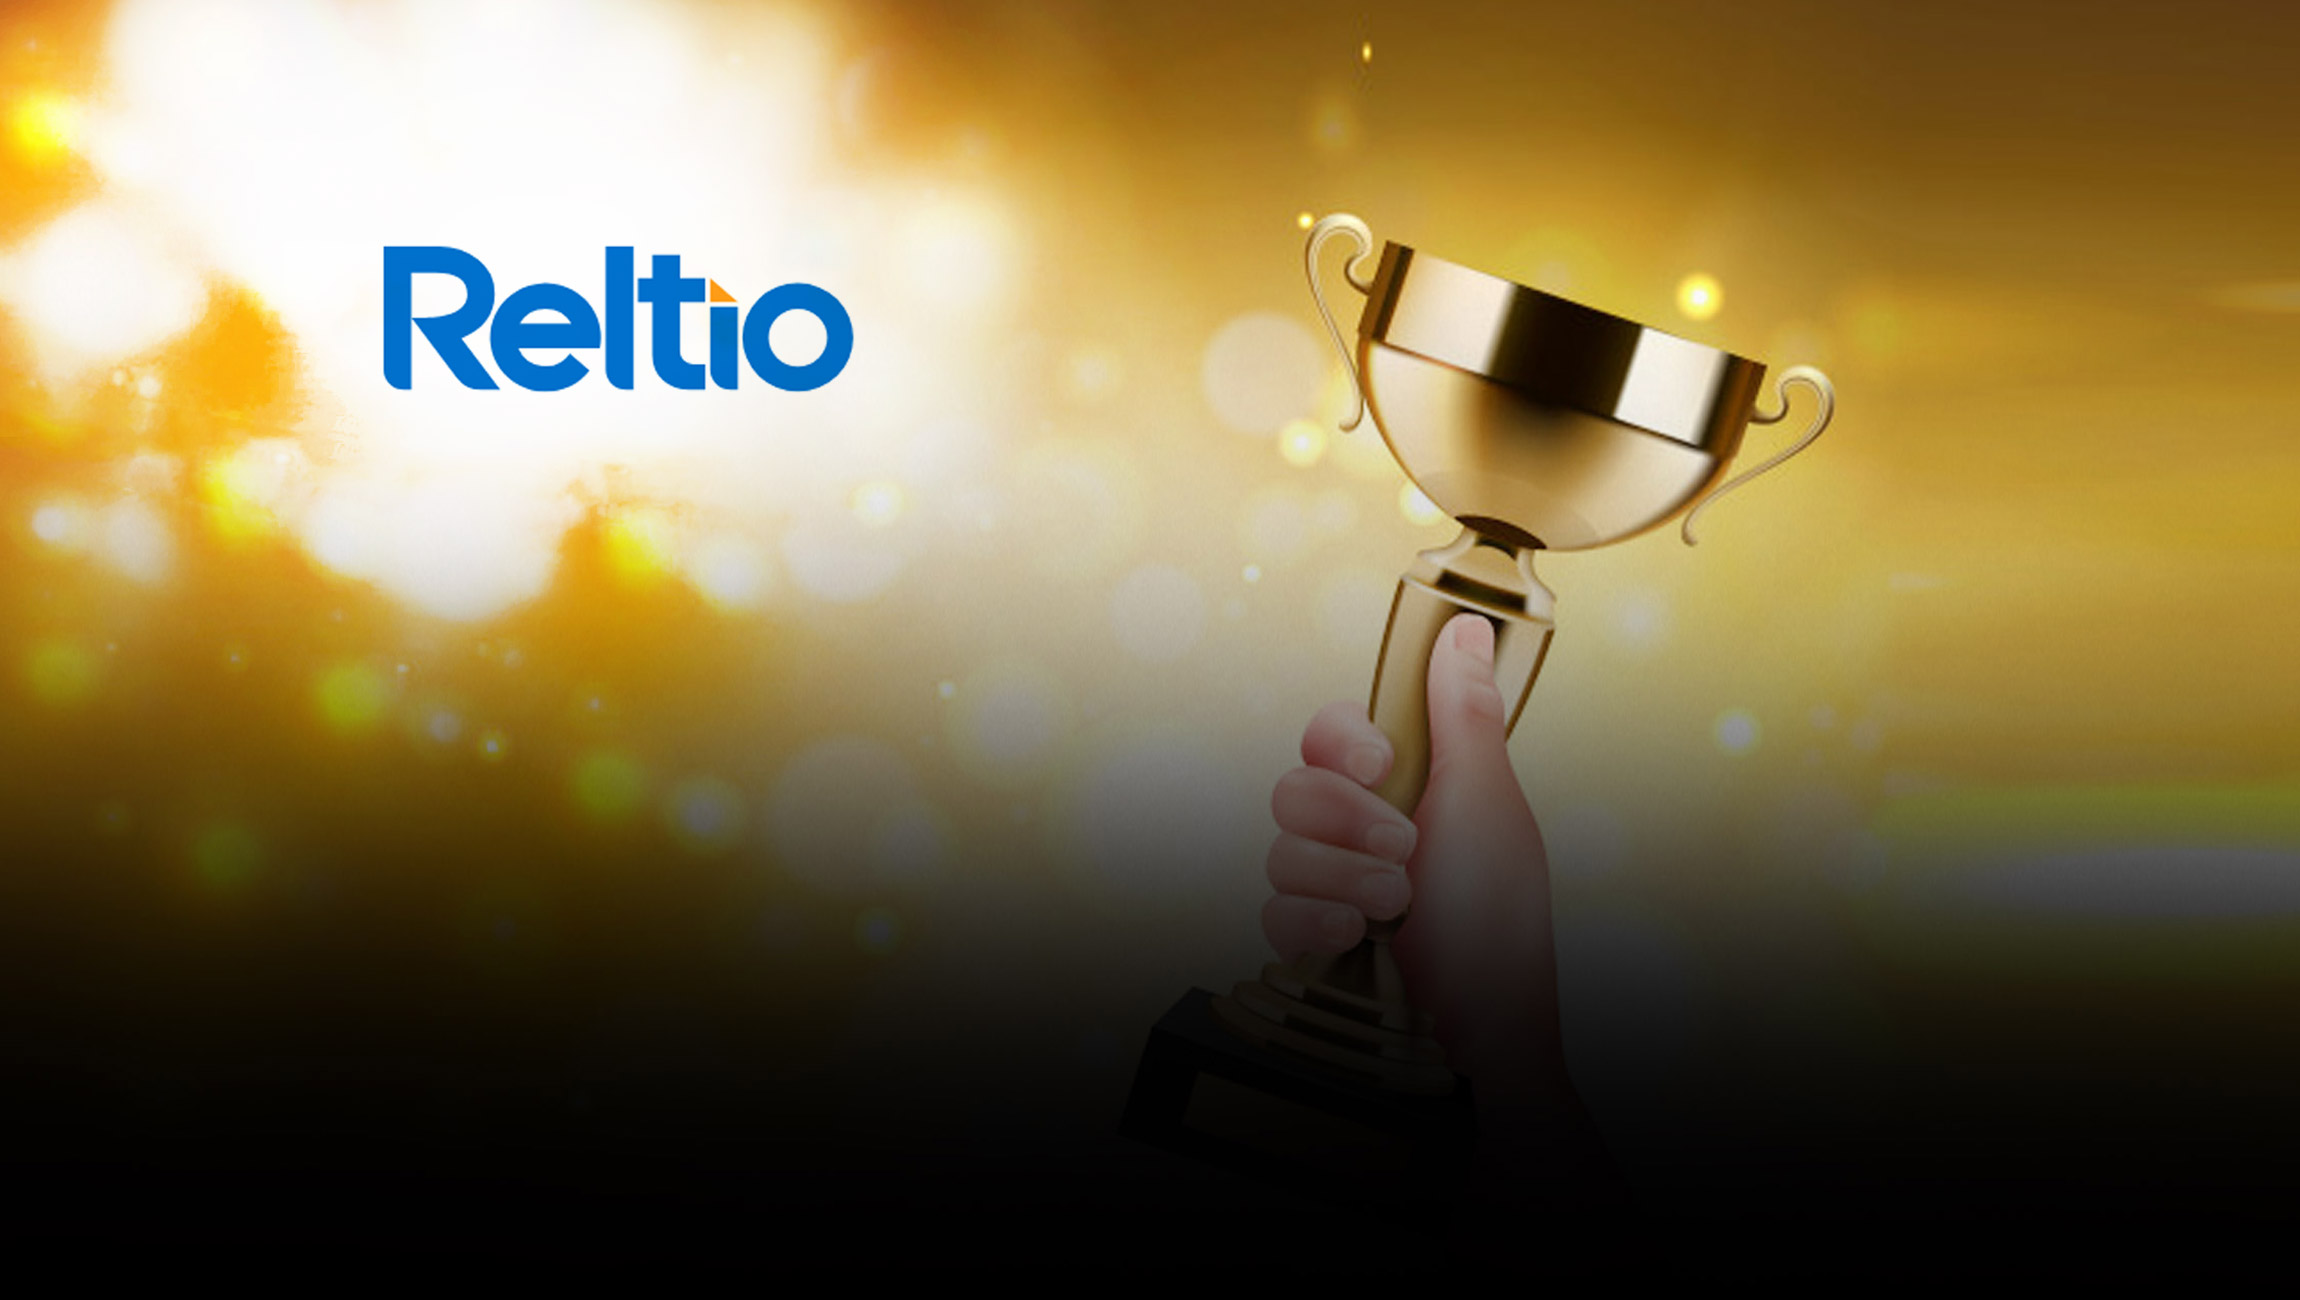 Reltio Wins Ventana Research Digital Innovation Award for Second Consecutive Year